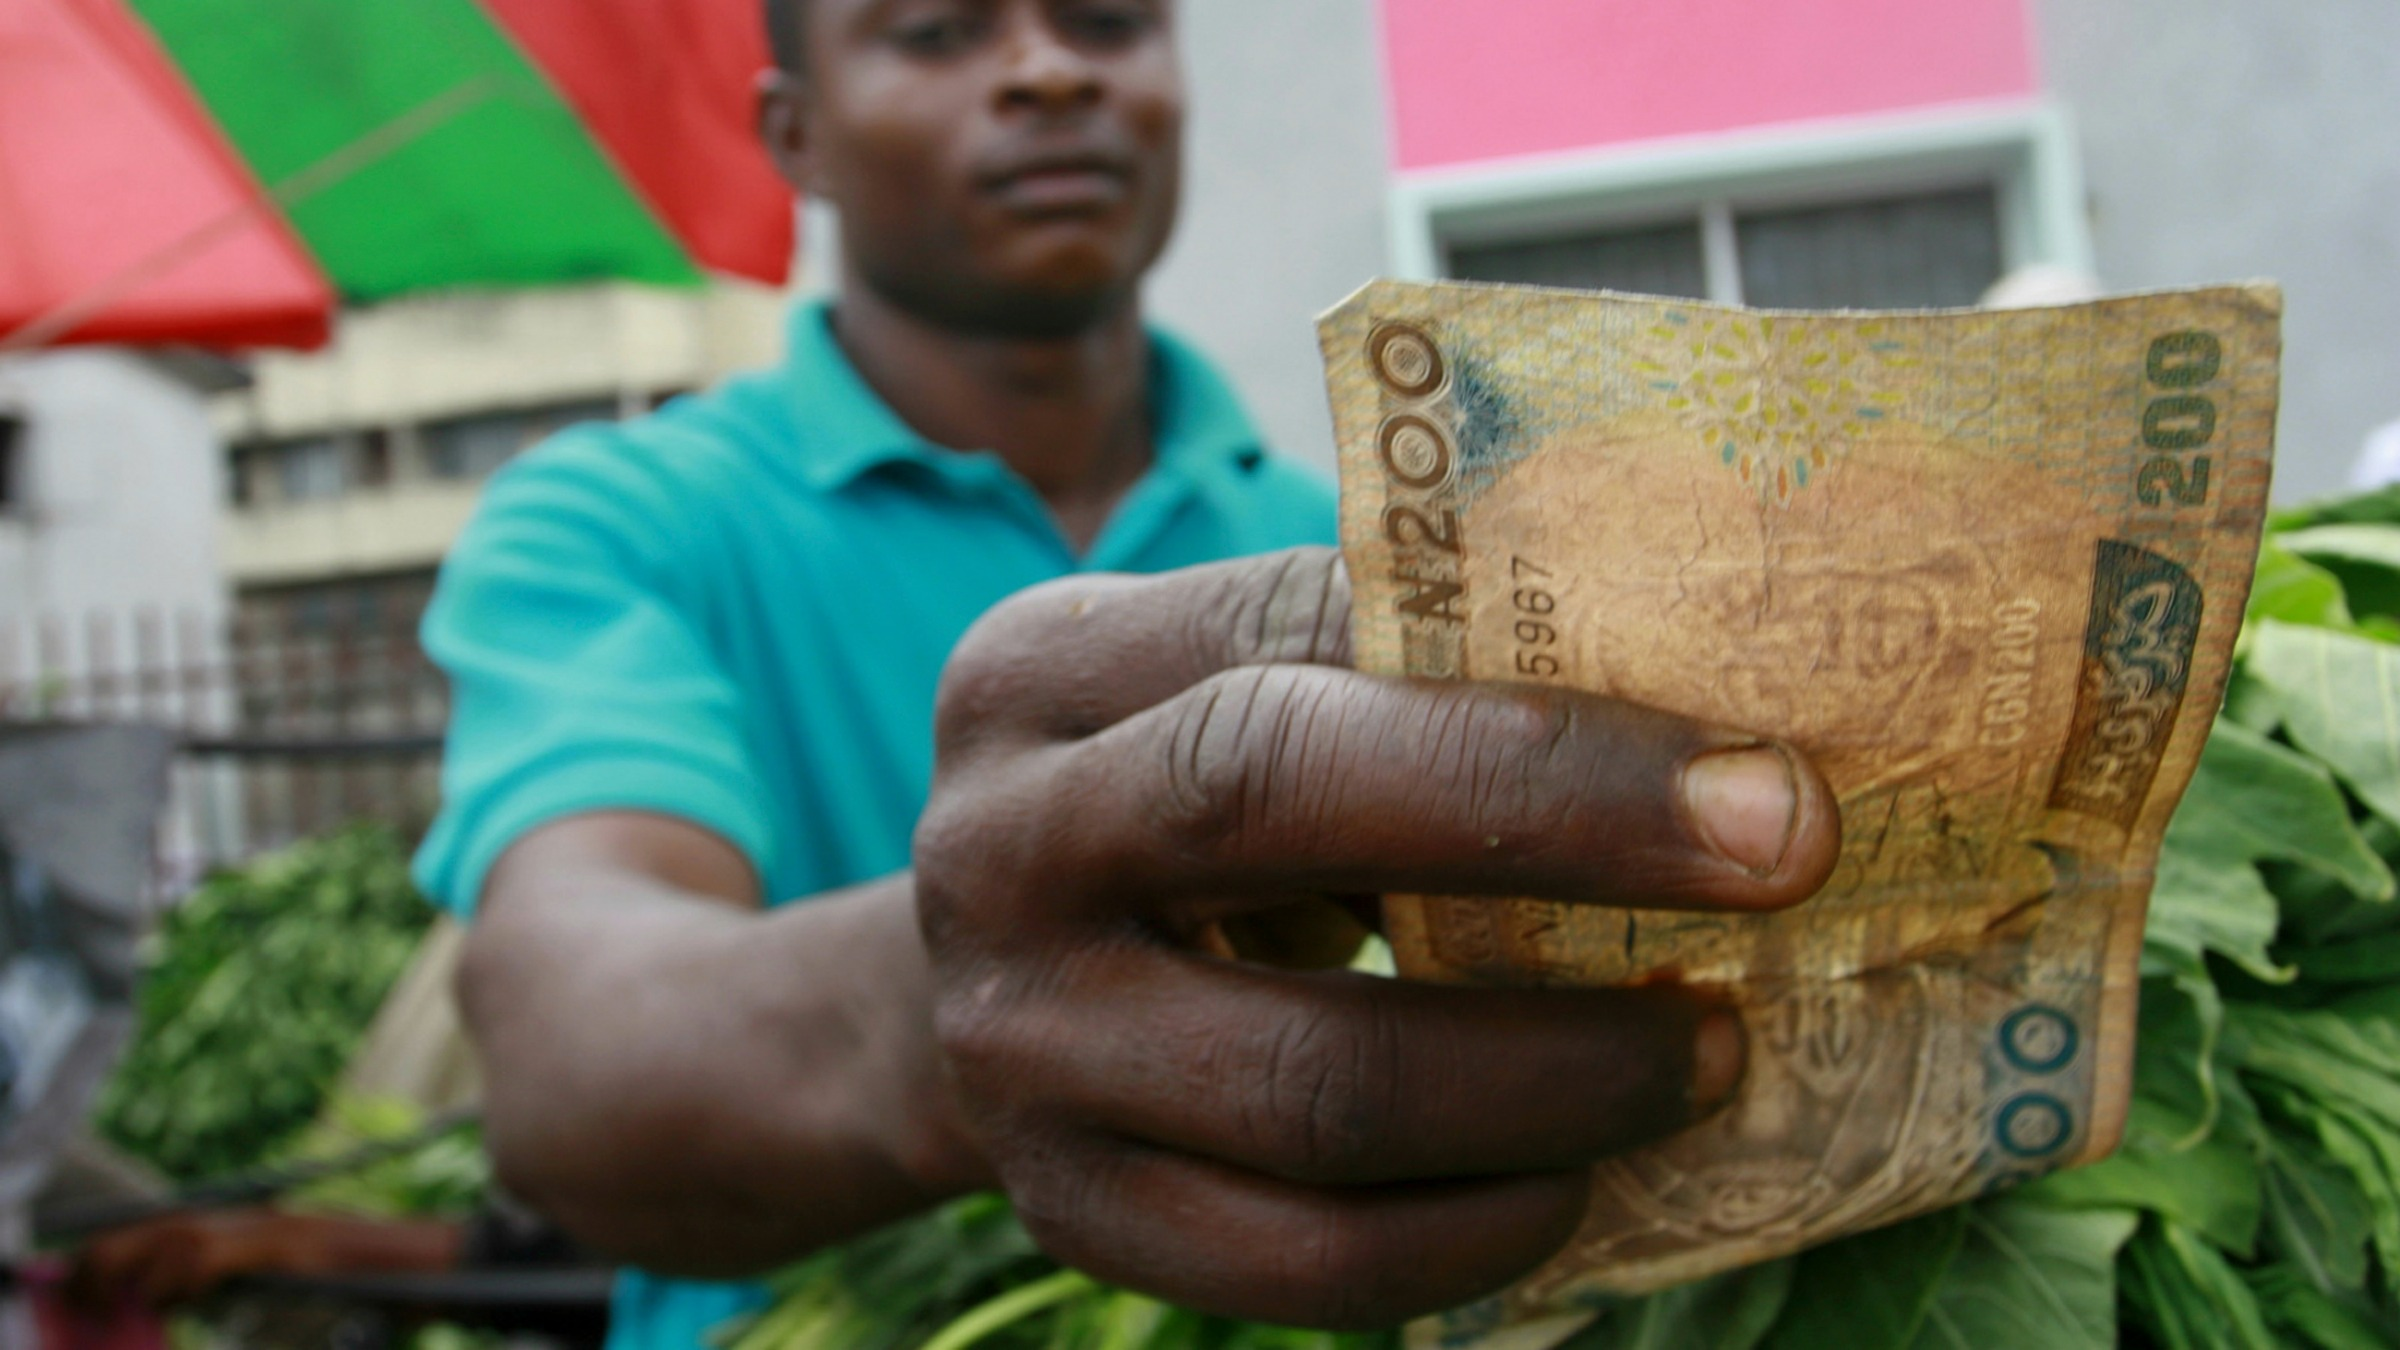 One Upside Of Nigeria S Dollar Shortage Le Like Facebook Will Now Accept The Naira